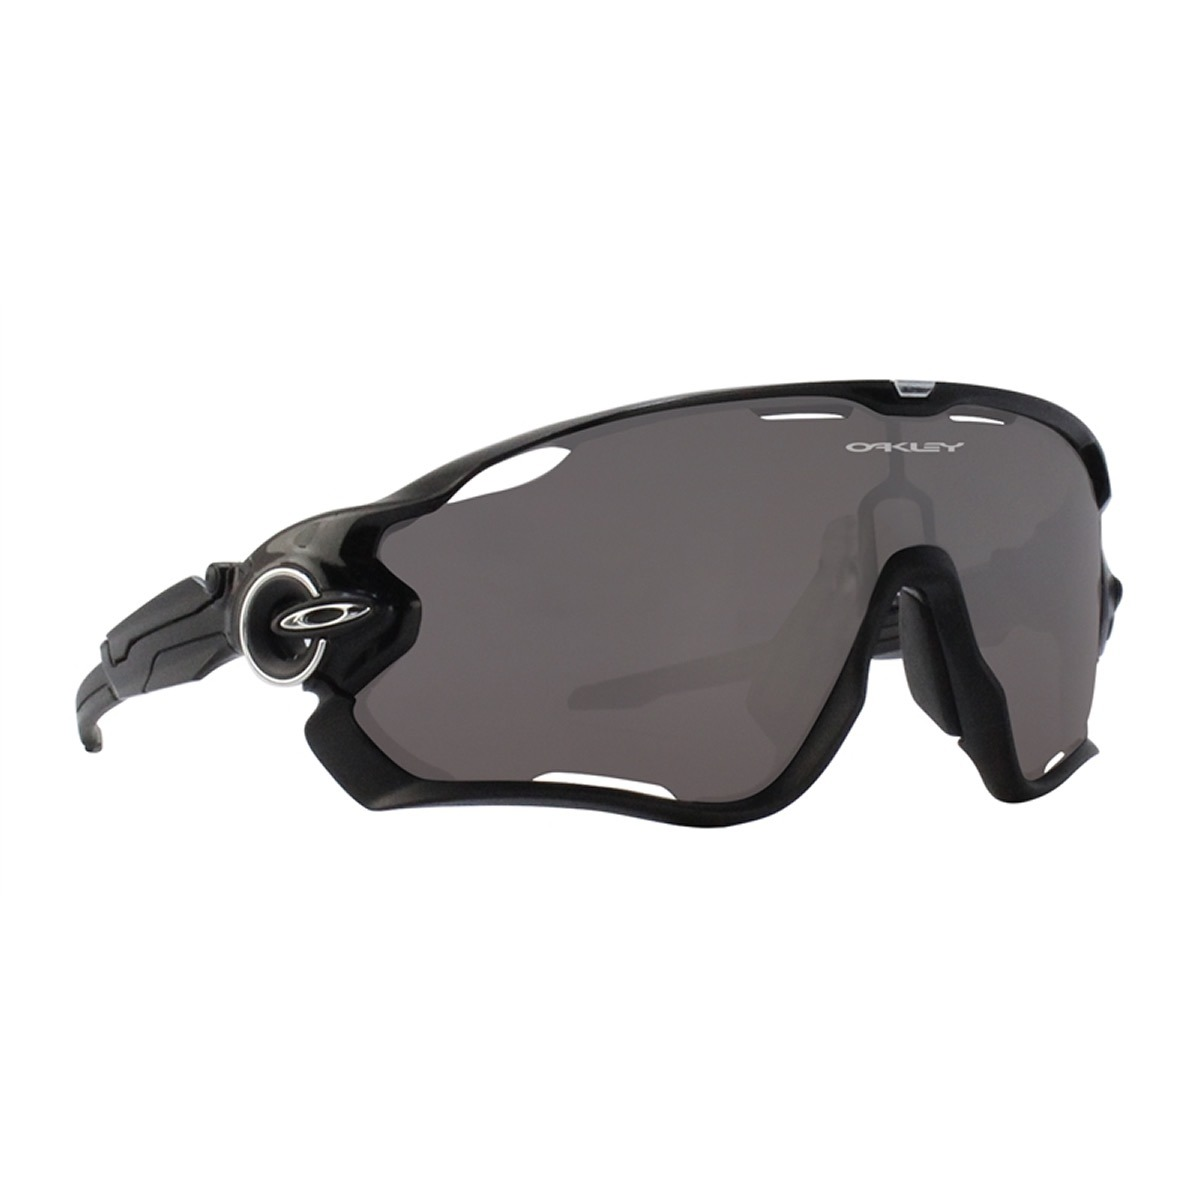 8c8f50f8fd6 ... cycling 4662a eac48  wholesale oakley jawbreaker polished black prizm  black polarized. cargando zoom. 52c8a ca2cf